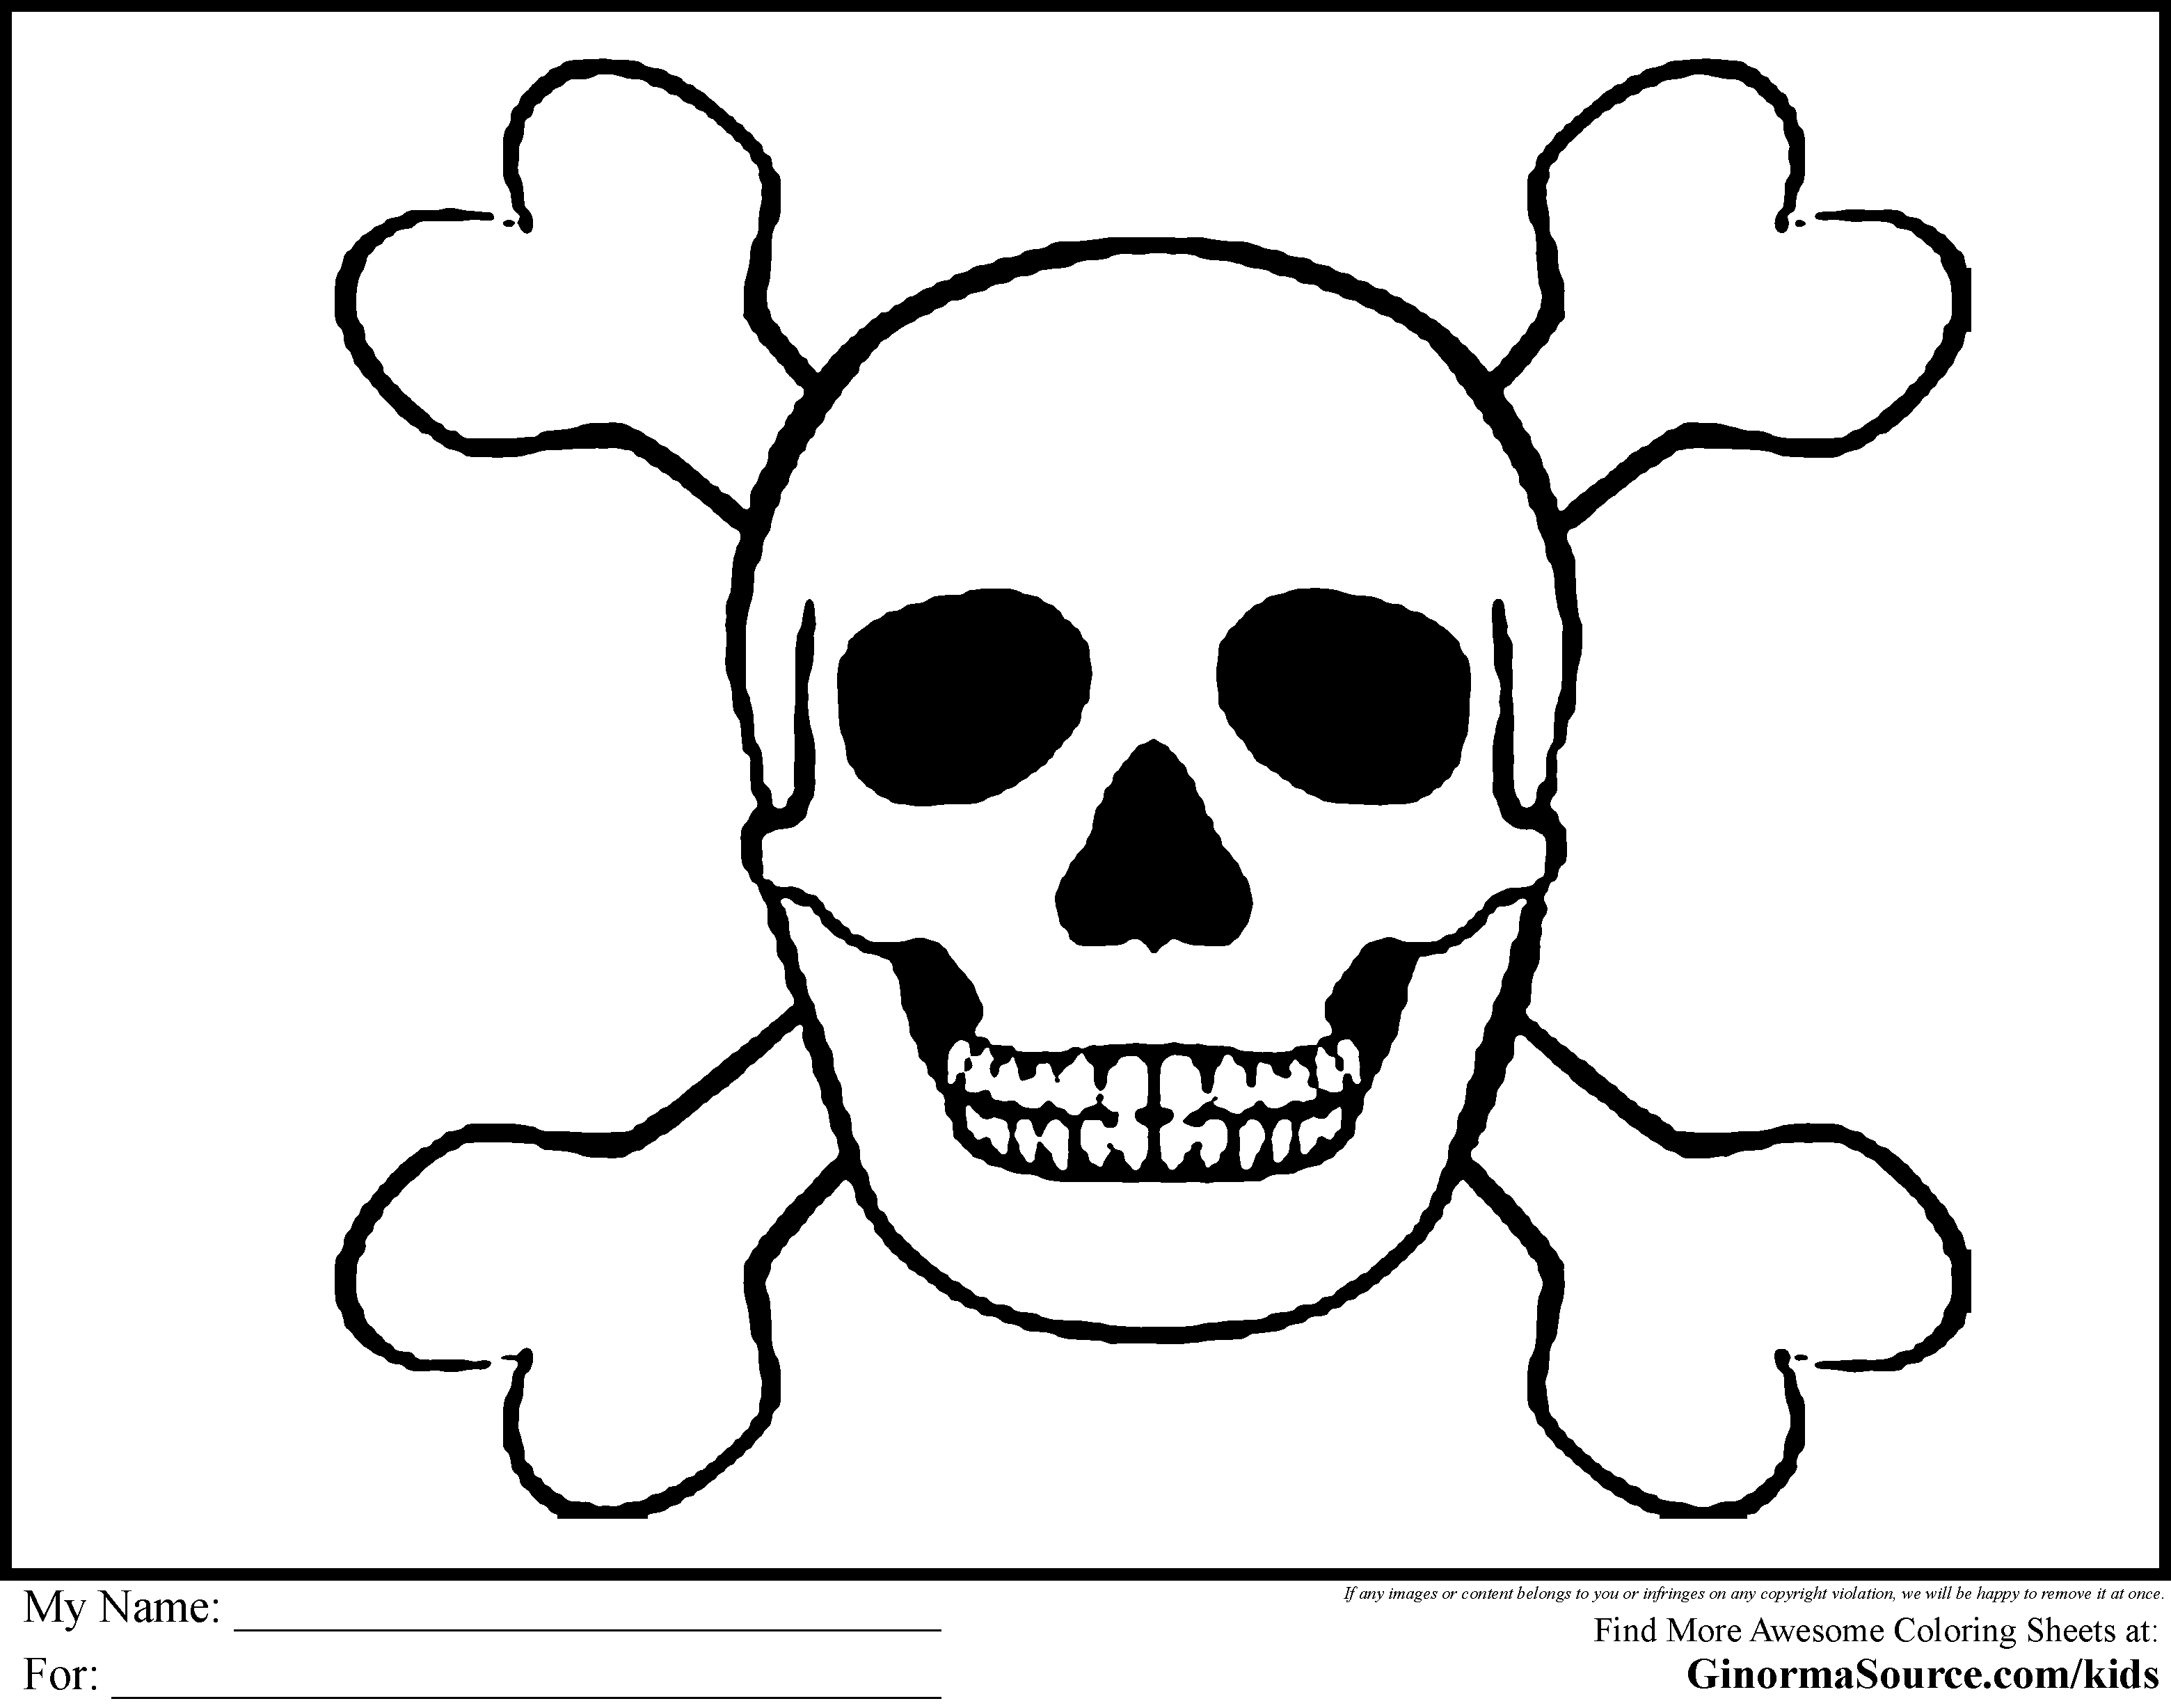 pirate coloring pages for kids printable free printable pirate coloring pages great for kids coloring printable pirate pages for kids